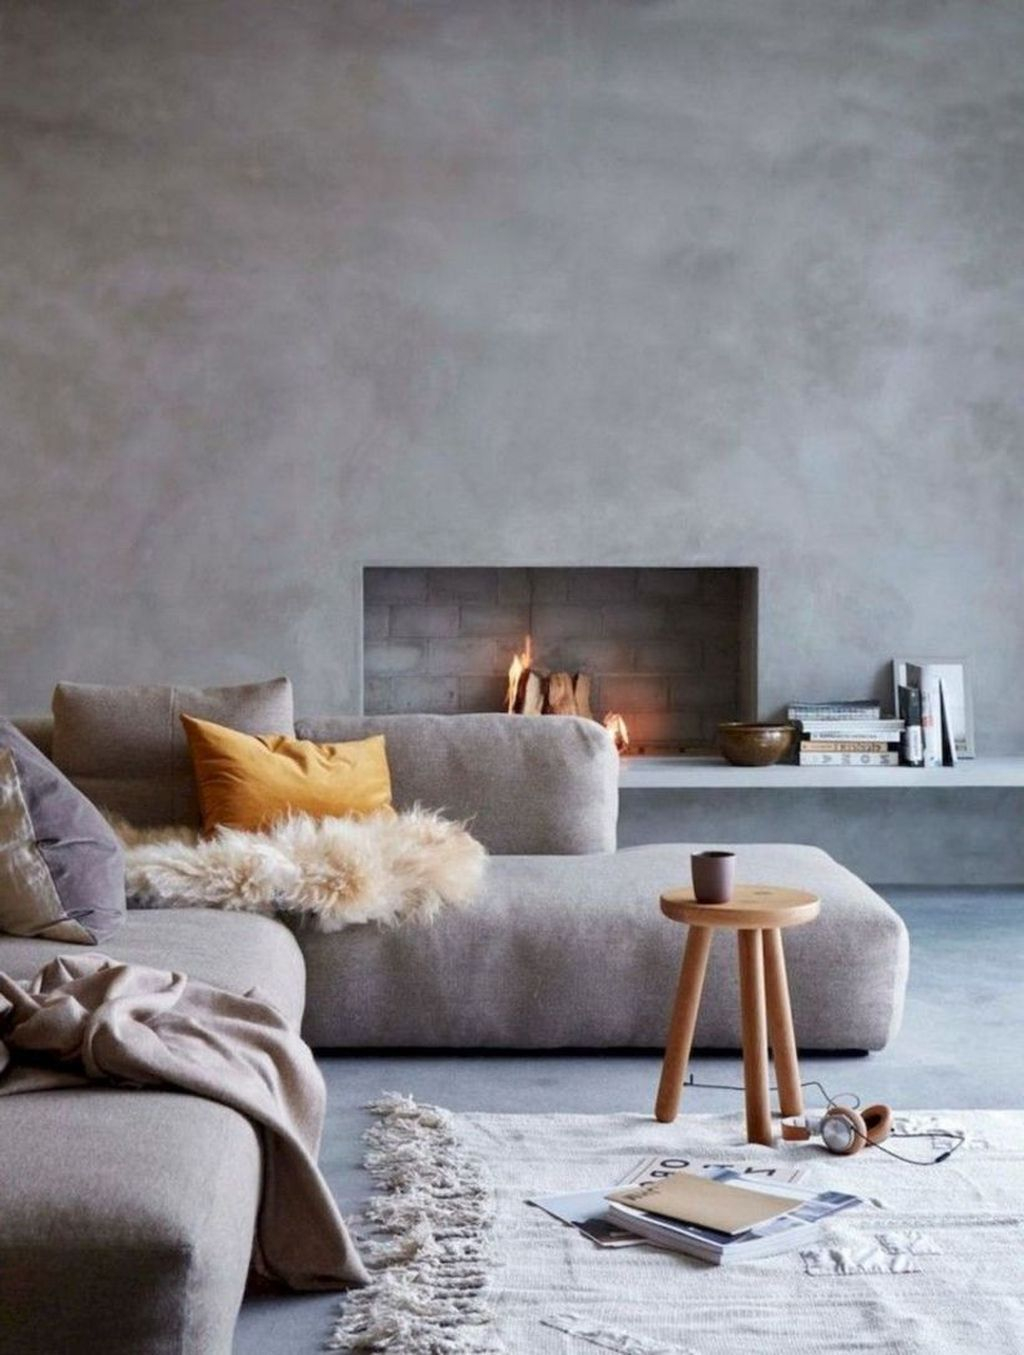 Cool Scandinavian Fireplace Design Ideas To Amaze Your Guests 19